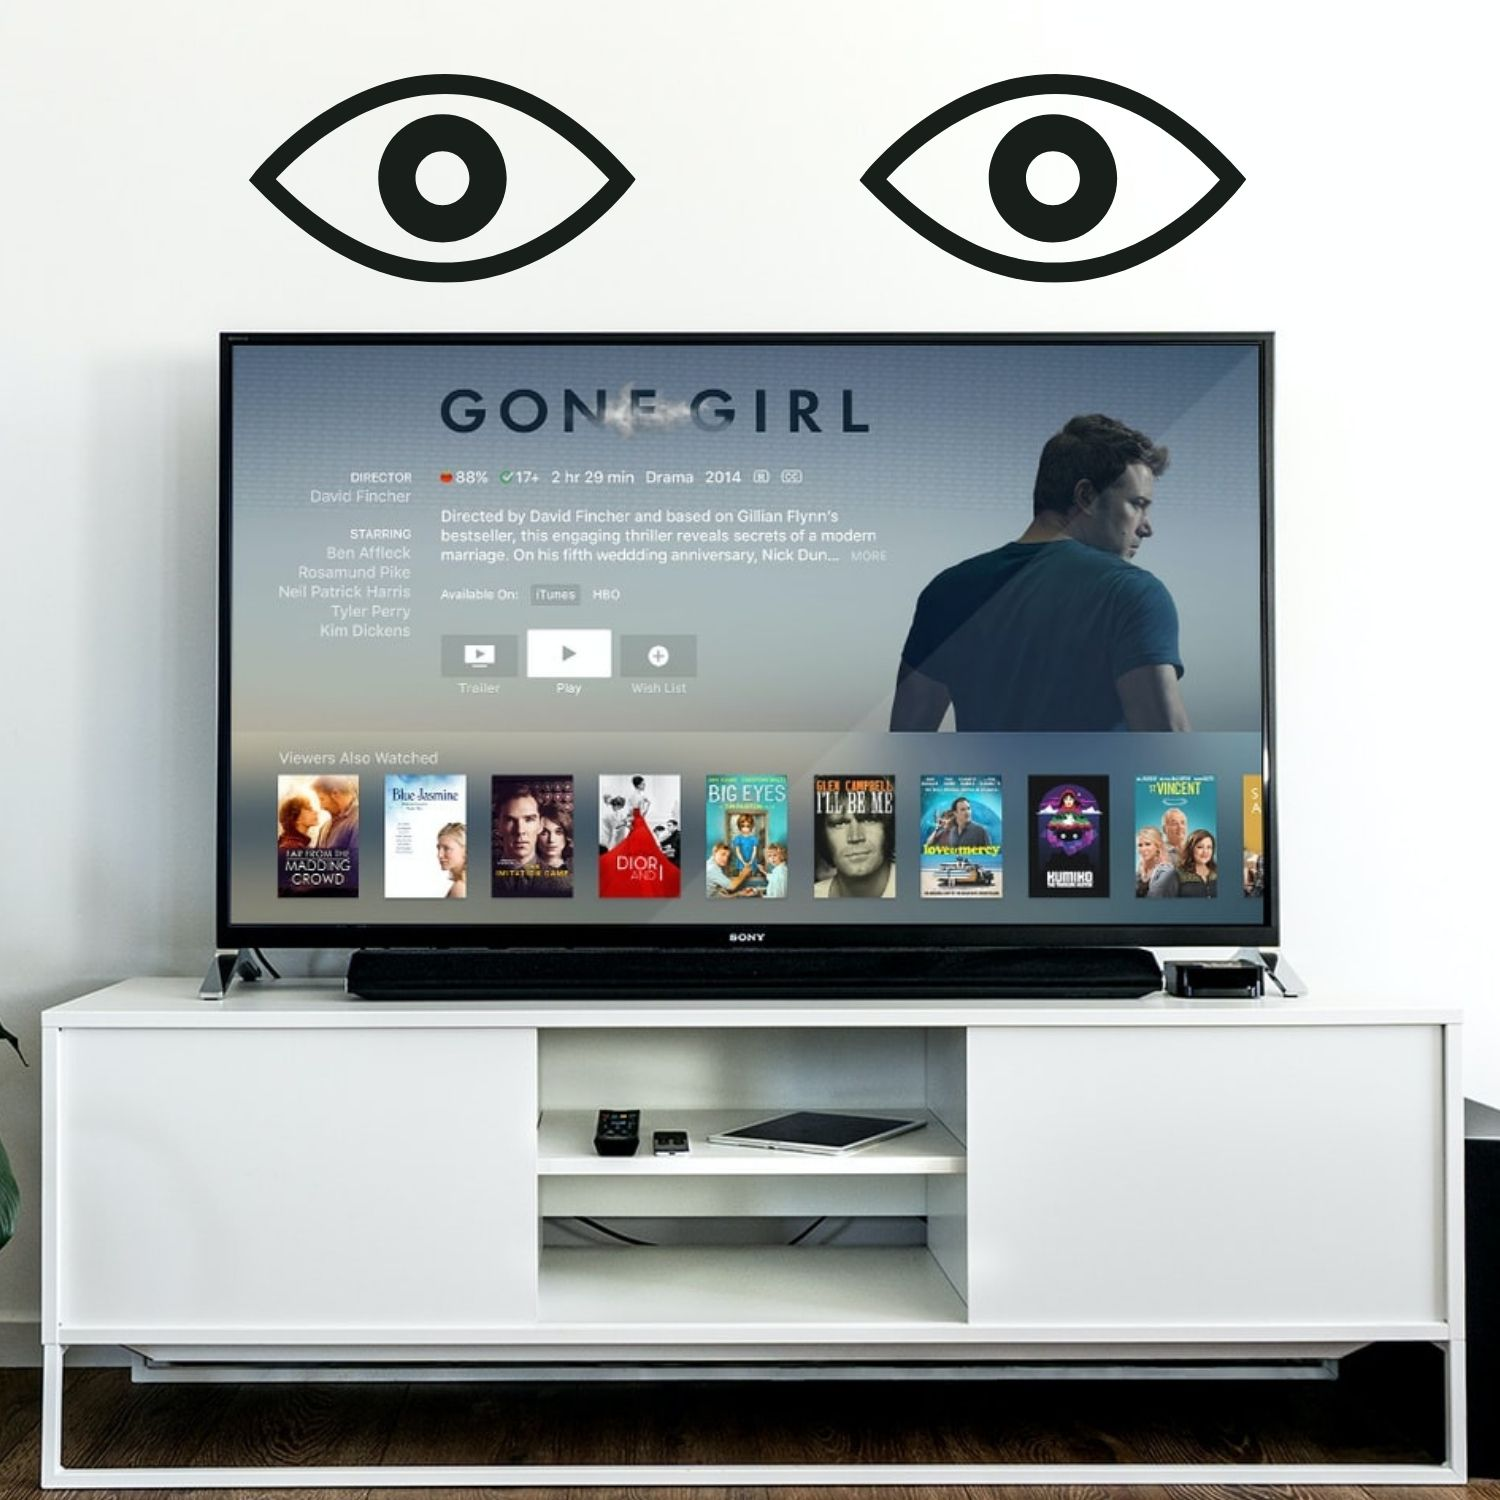 4 ways your Smart TV is Watching you